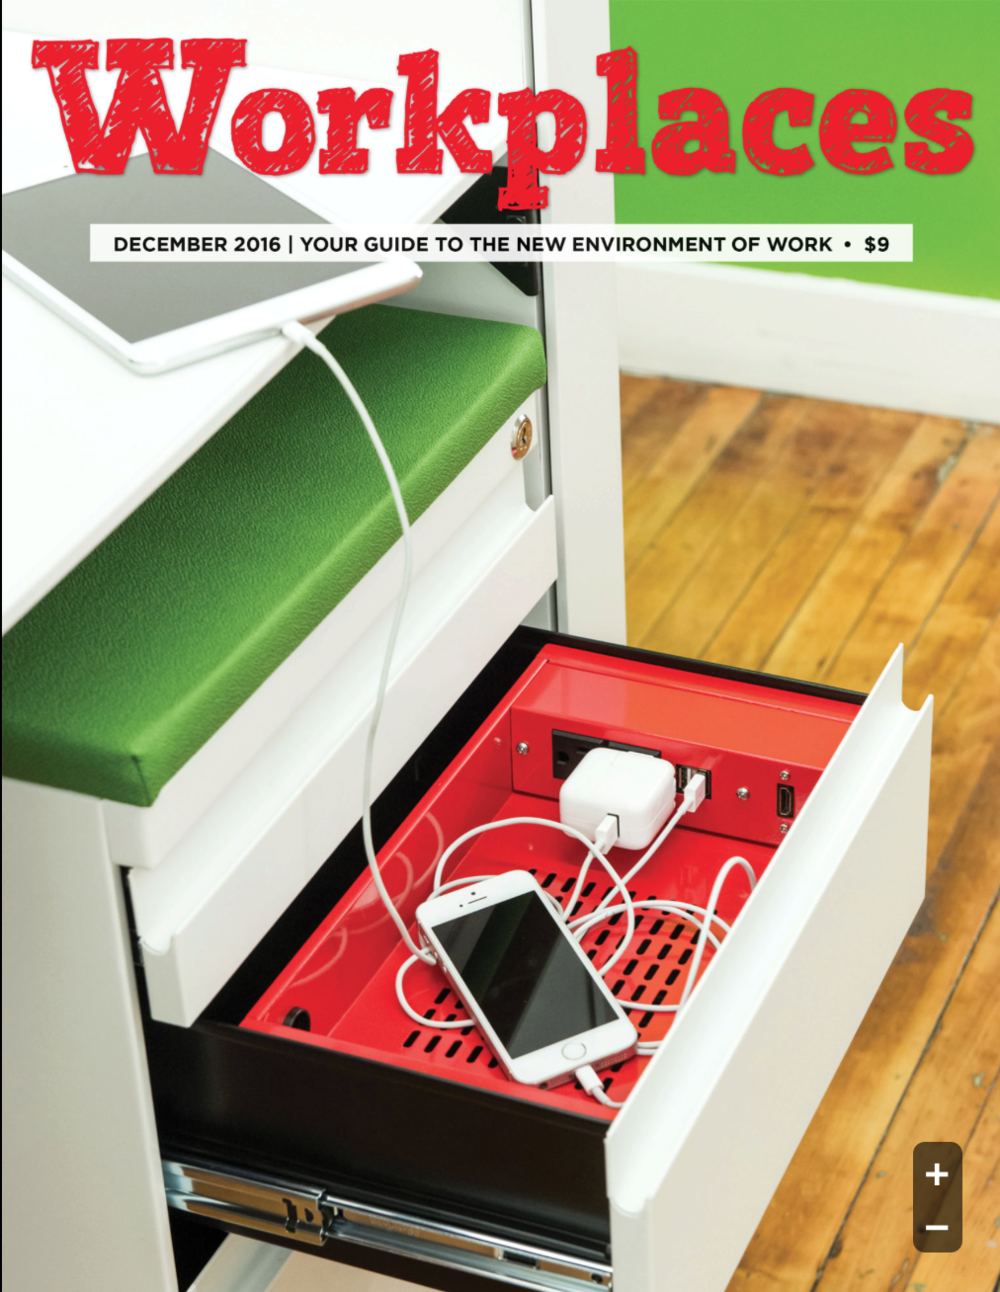 Slyde Ped Featured On the Cover of Workplaces Magazine